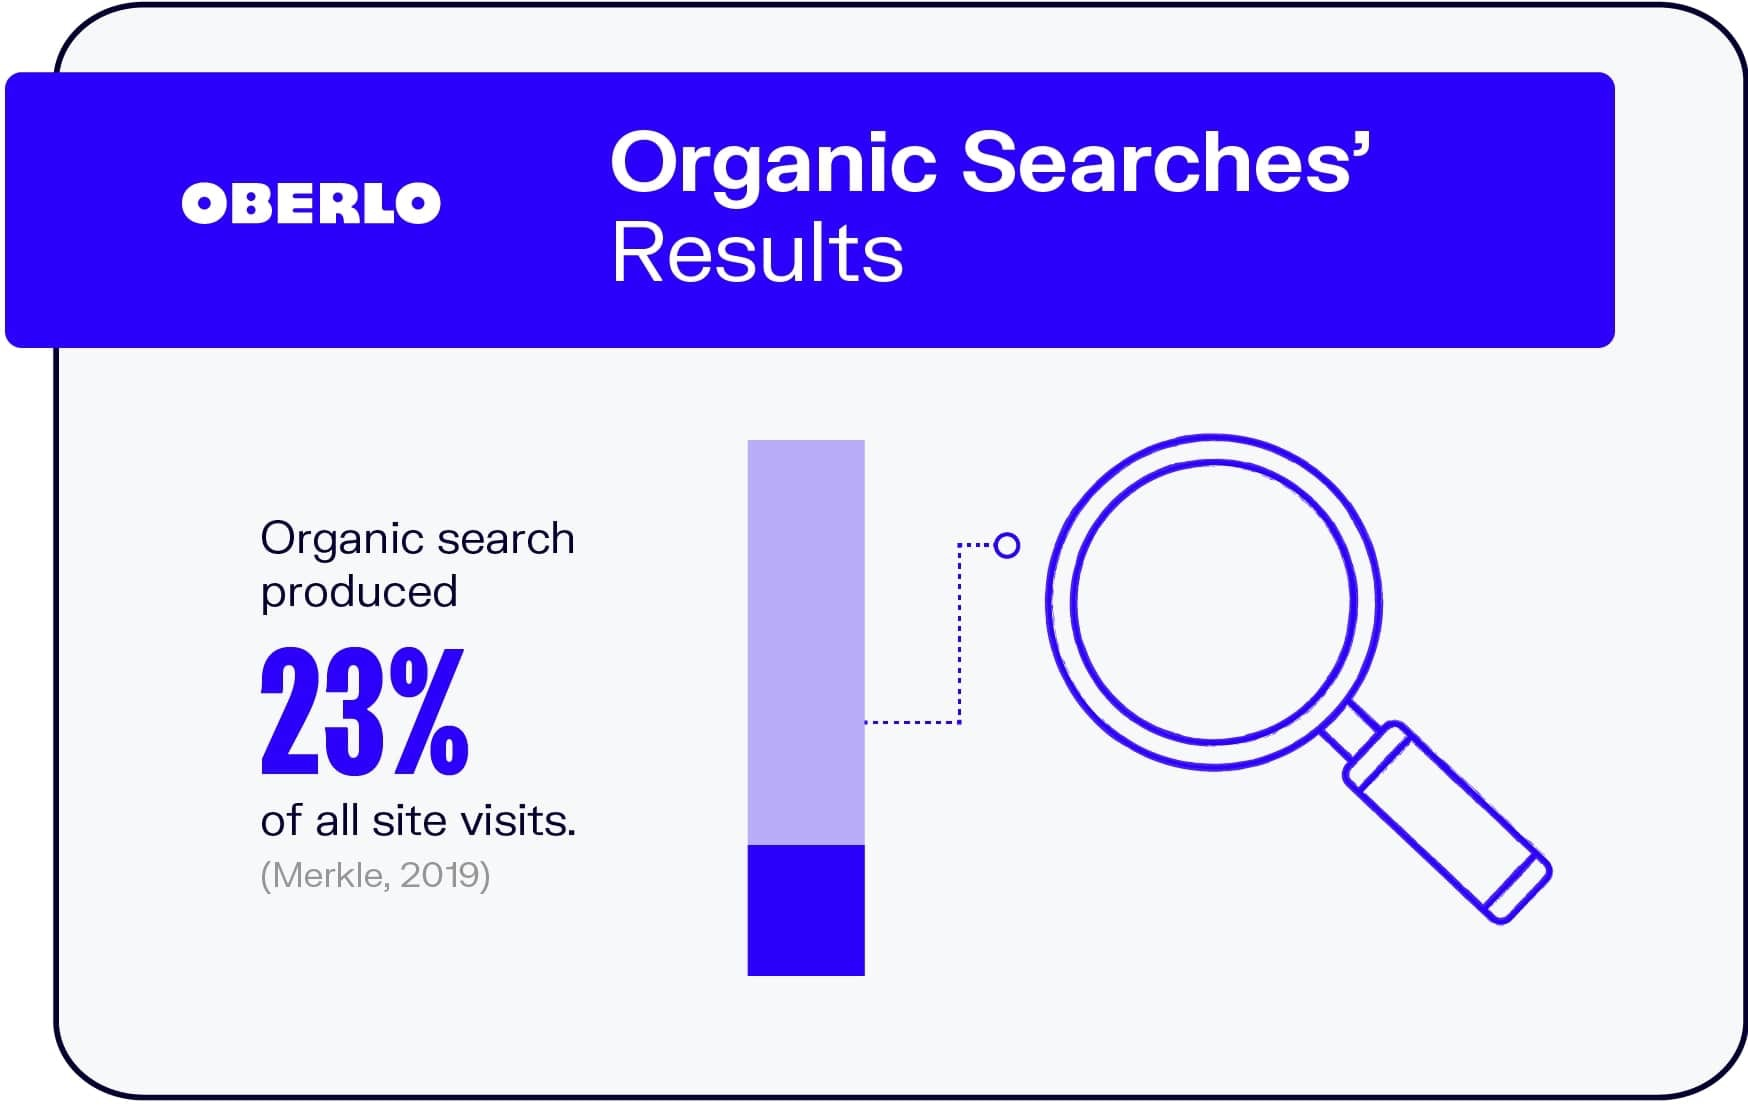 Organic Searches' Results